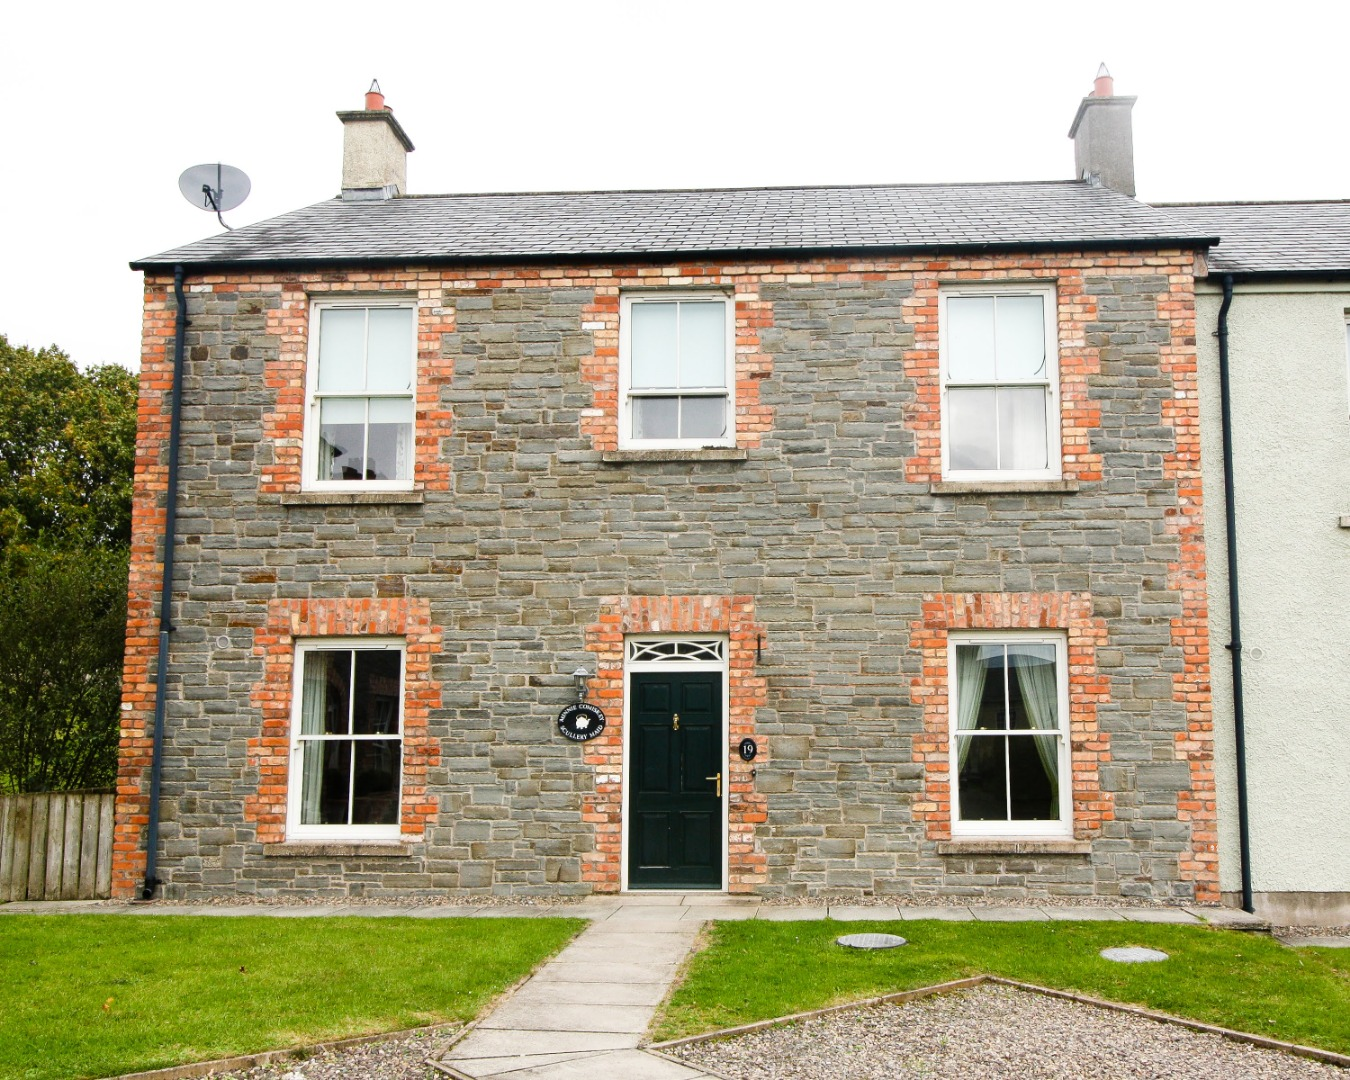 4 bed End of Terrace for sale on No.19 Village Square, Glaslough, Co. Monaghan - Property Image 1